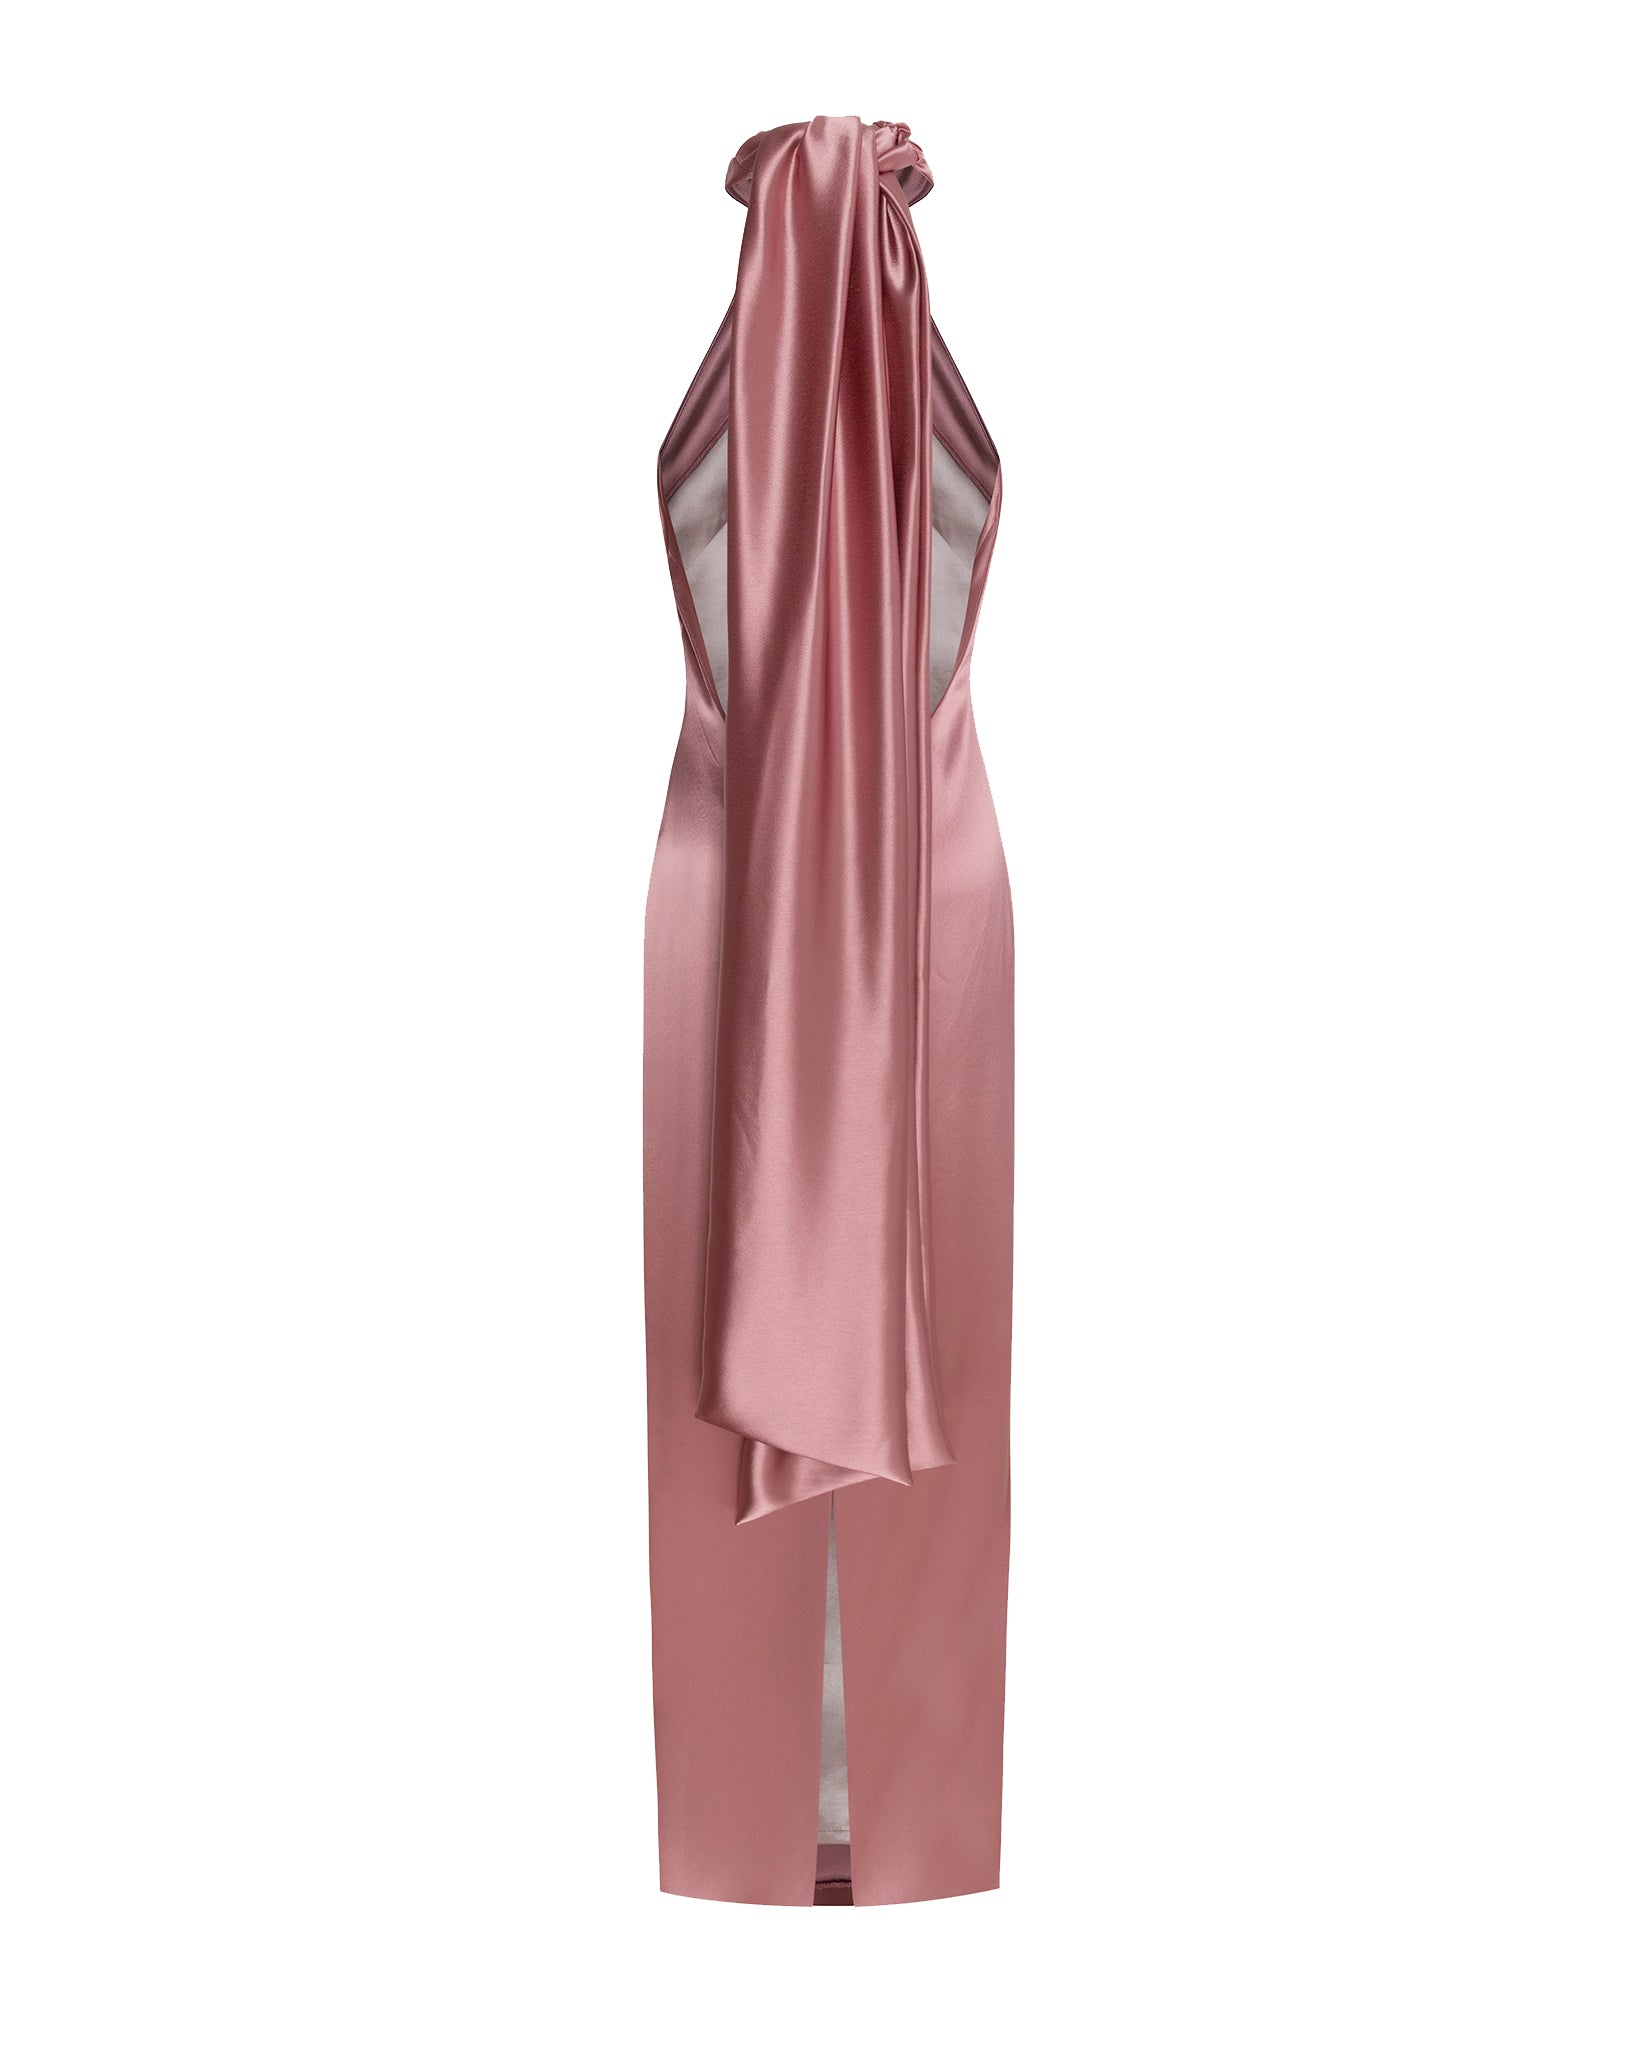 KALA HALTERNECK SATIN DRESS